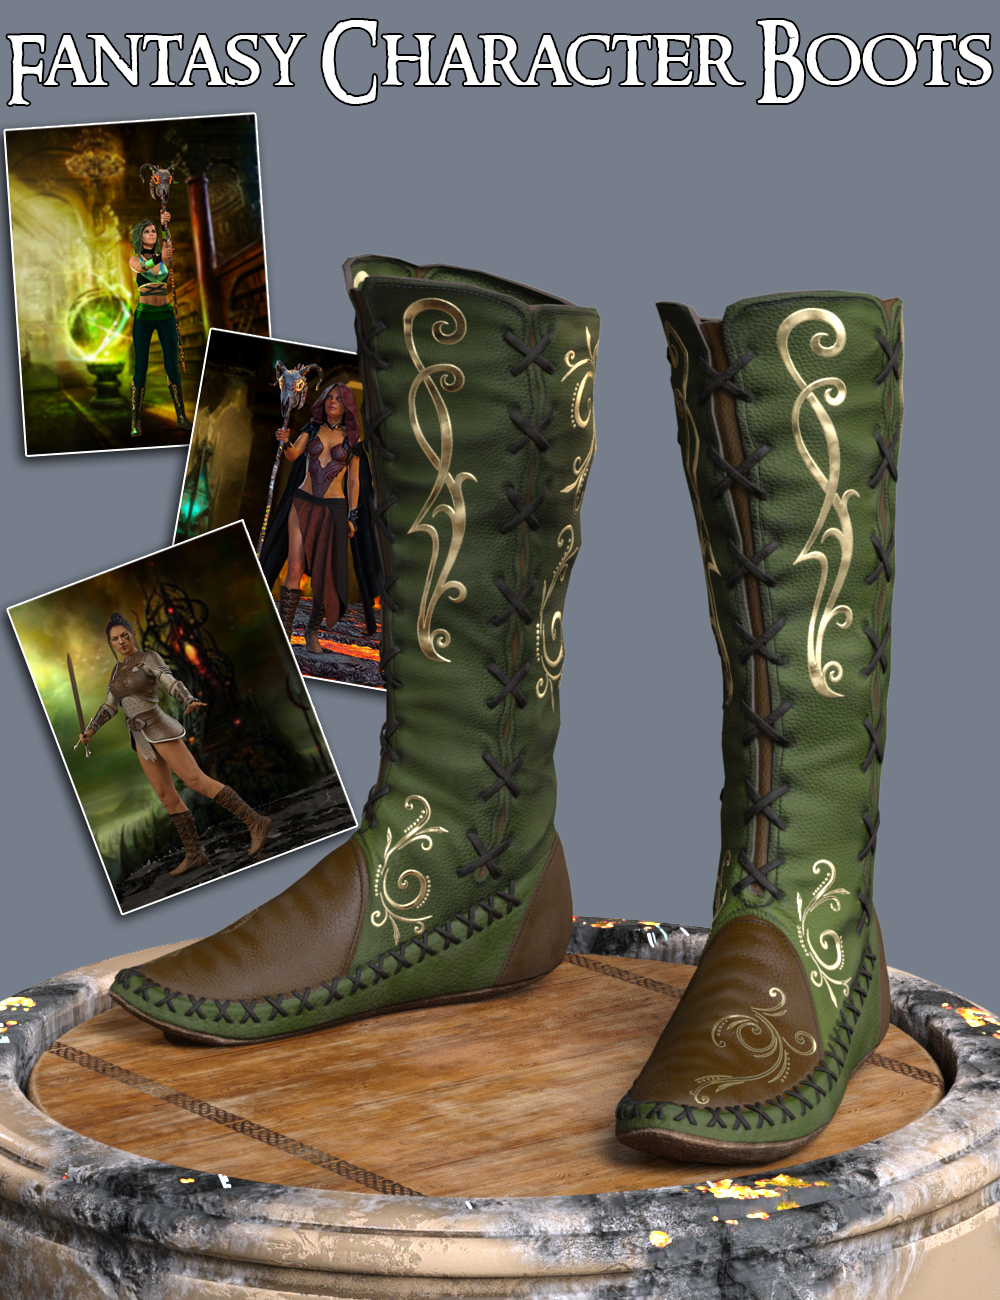 S3D FC Boots for Genesis 3 and 8 Female(s) by: Slide3D, 3D Models by Daz 3D